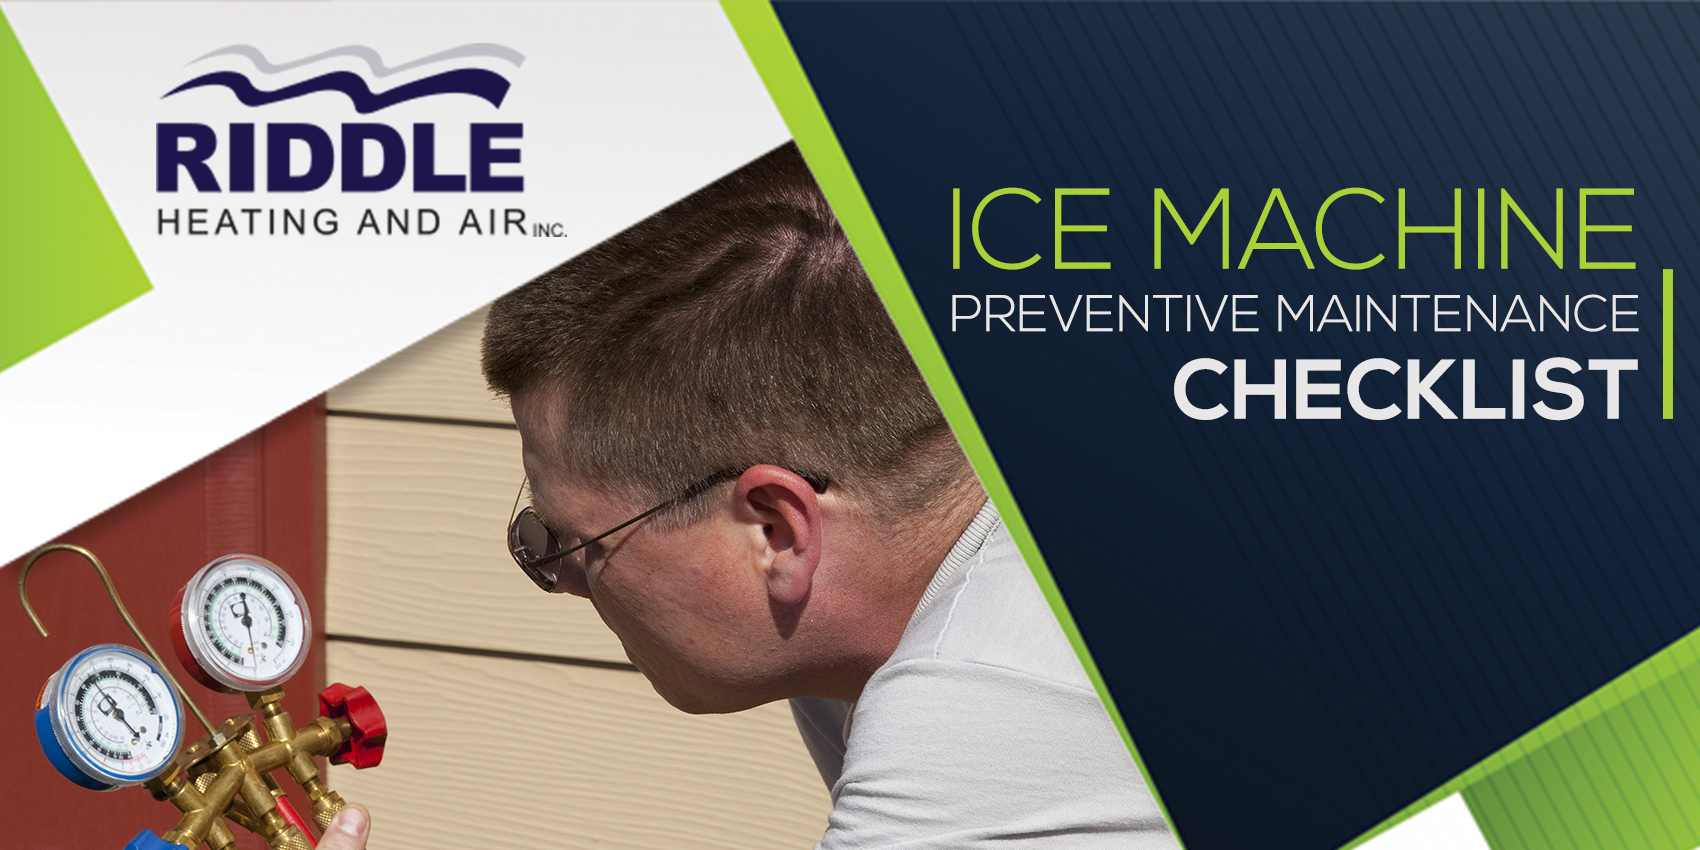 Ice Machine Preventive Maintenance Checklist